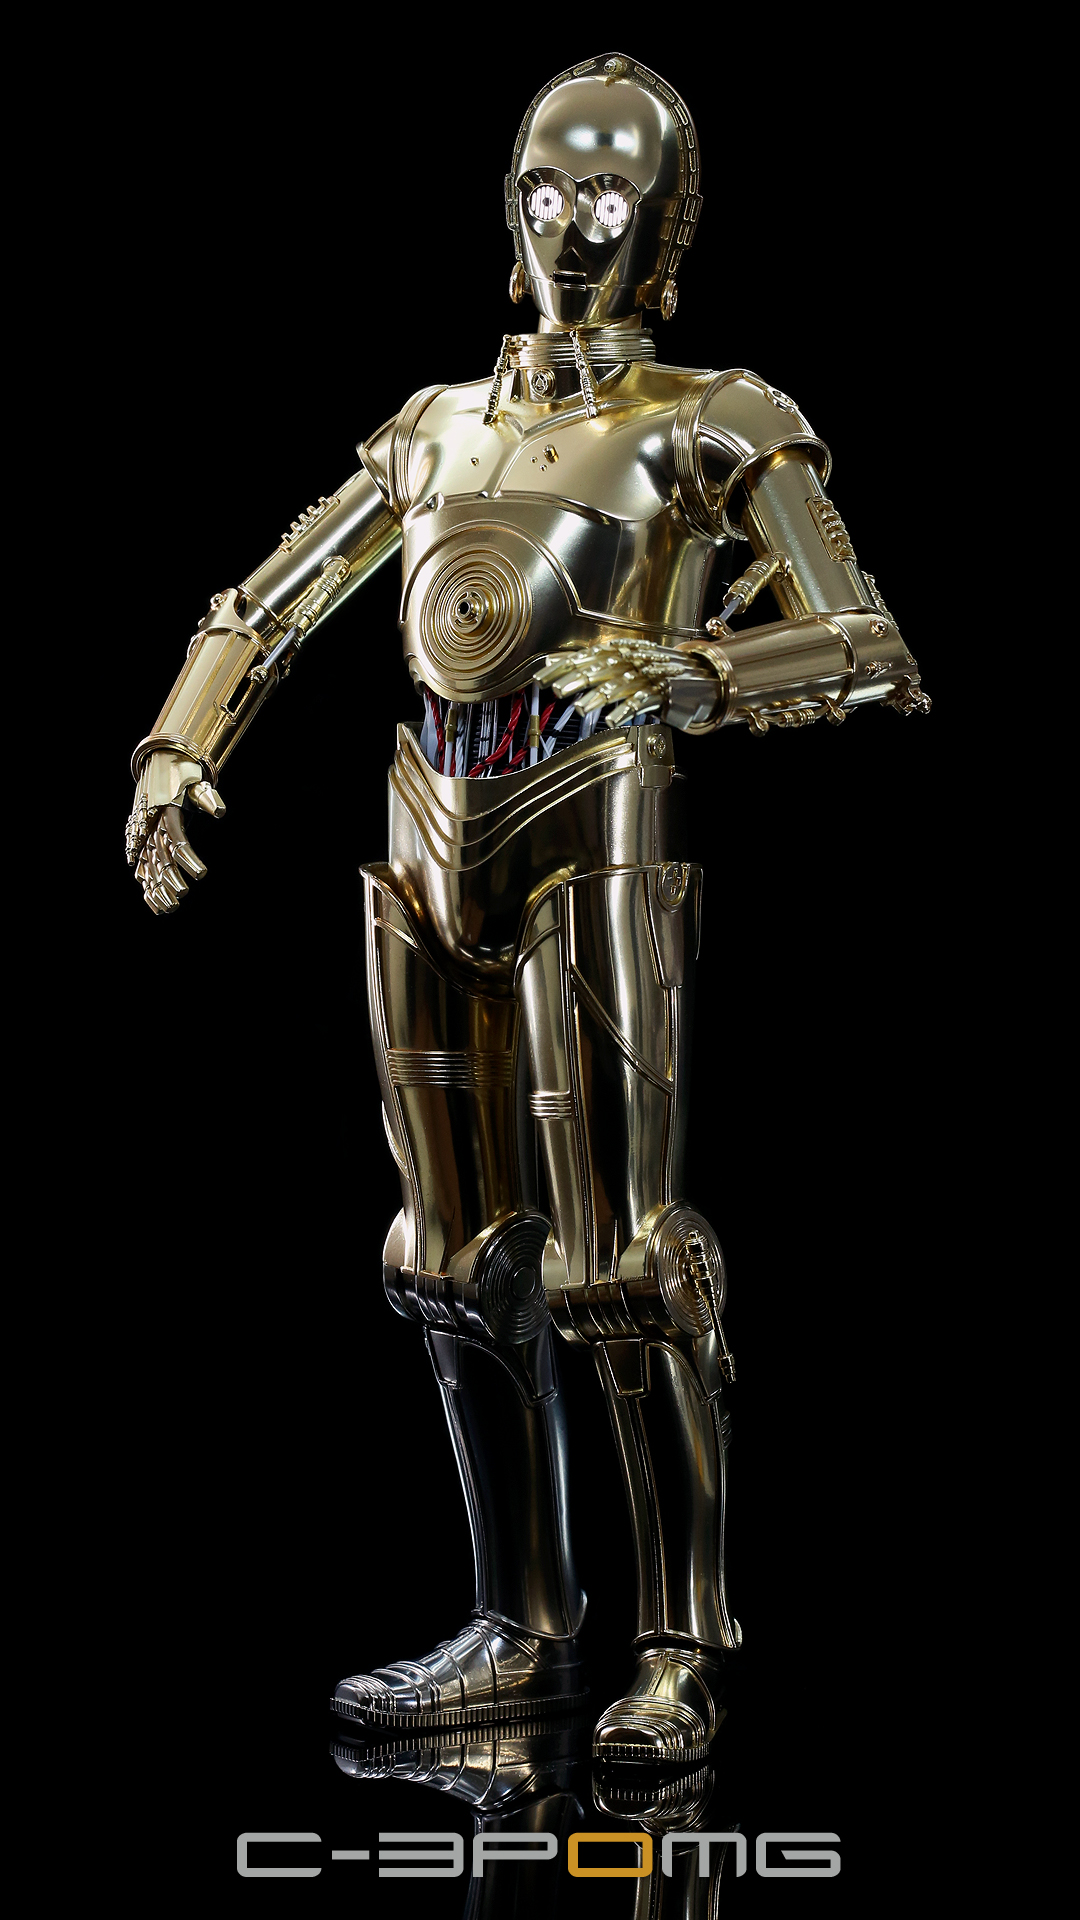 [Bandai] Star Wars: C-3PO - Perfect Model 1/6 scale - LANÇADO!!! - Página 2 C-3PO1026_zps38f42f85